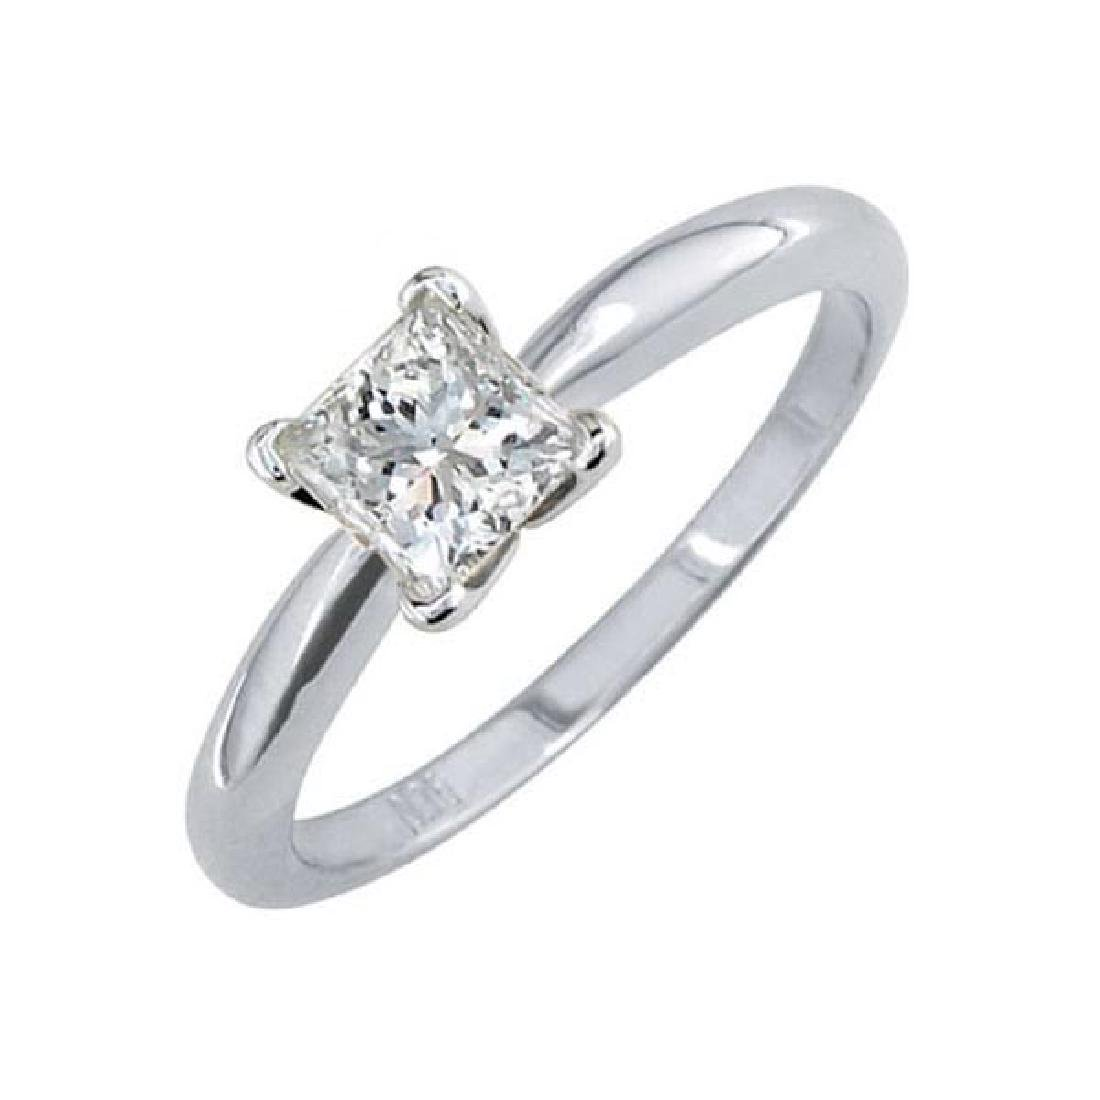 Certified 1.2 CTW Princess Diamond Solitaire 14k Ring H